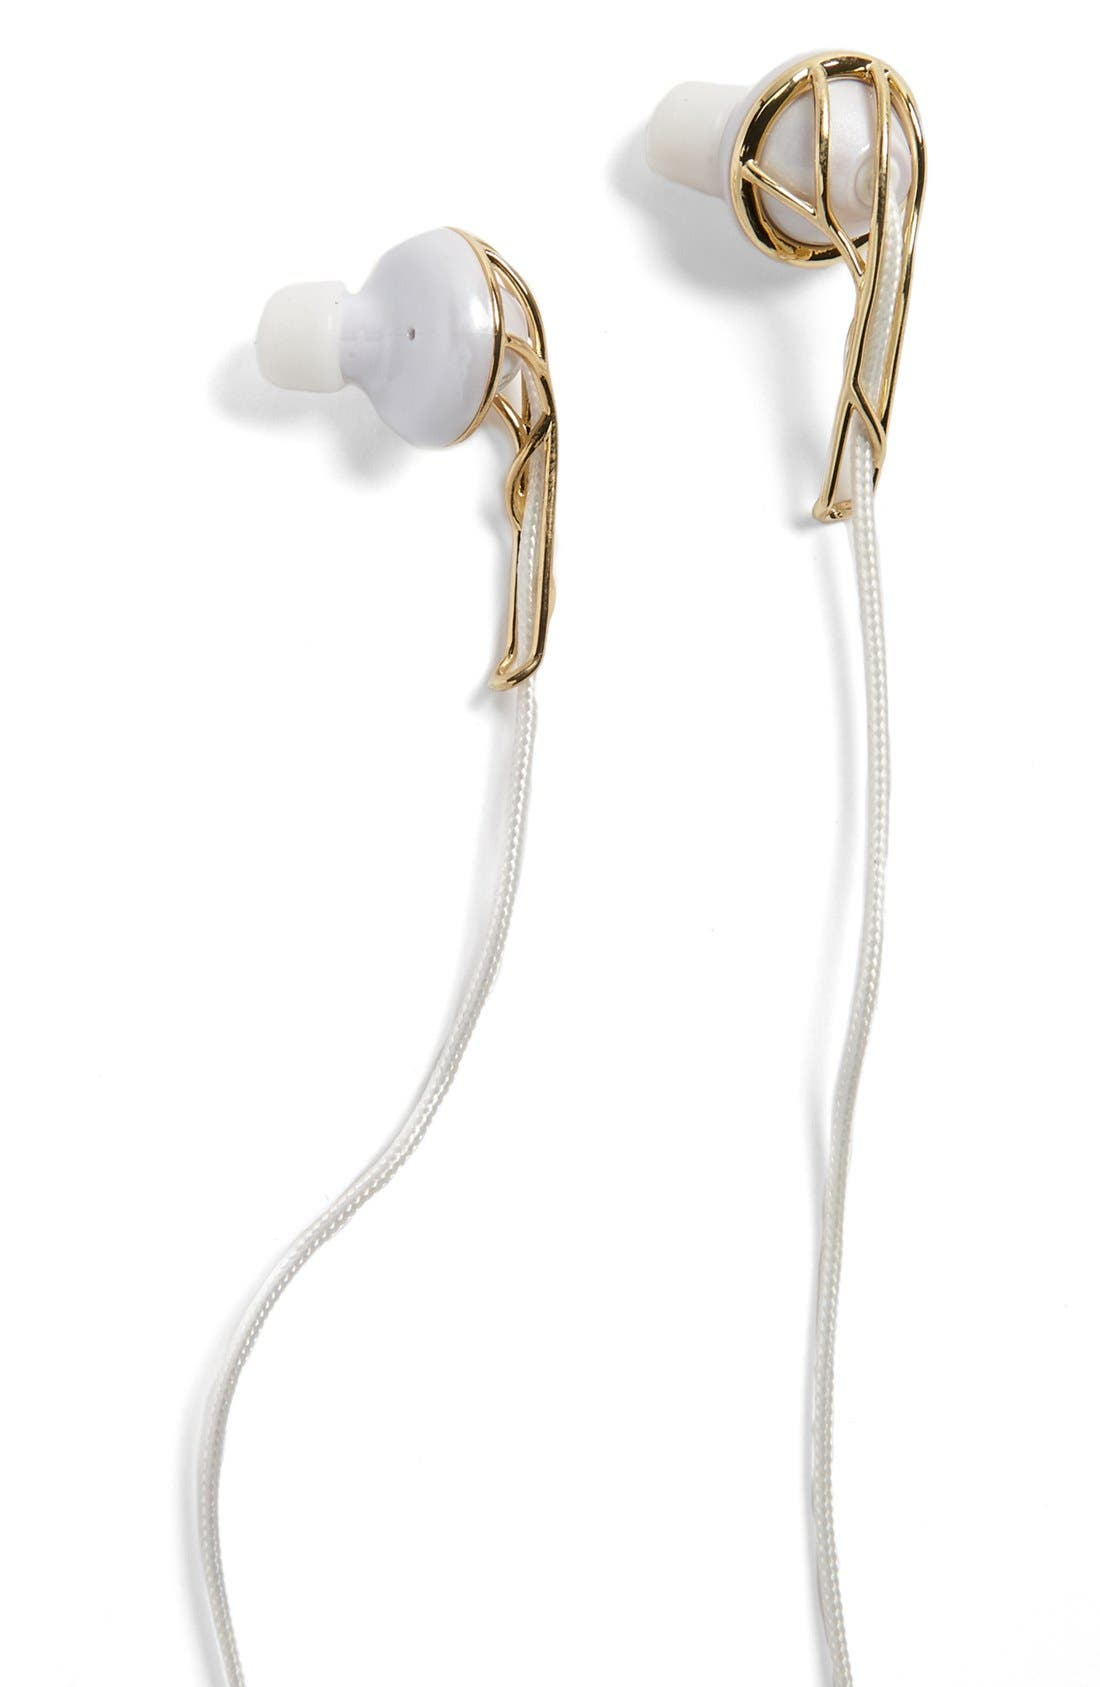 Main Image - Frends 'Ella B' Earbuds